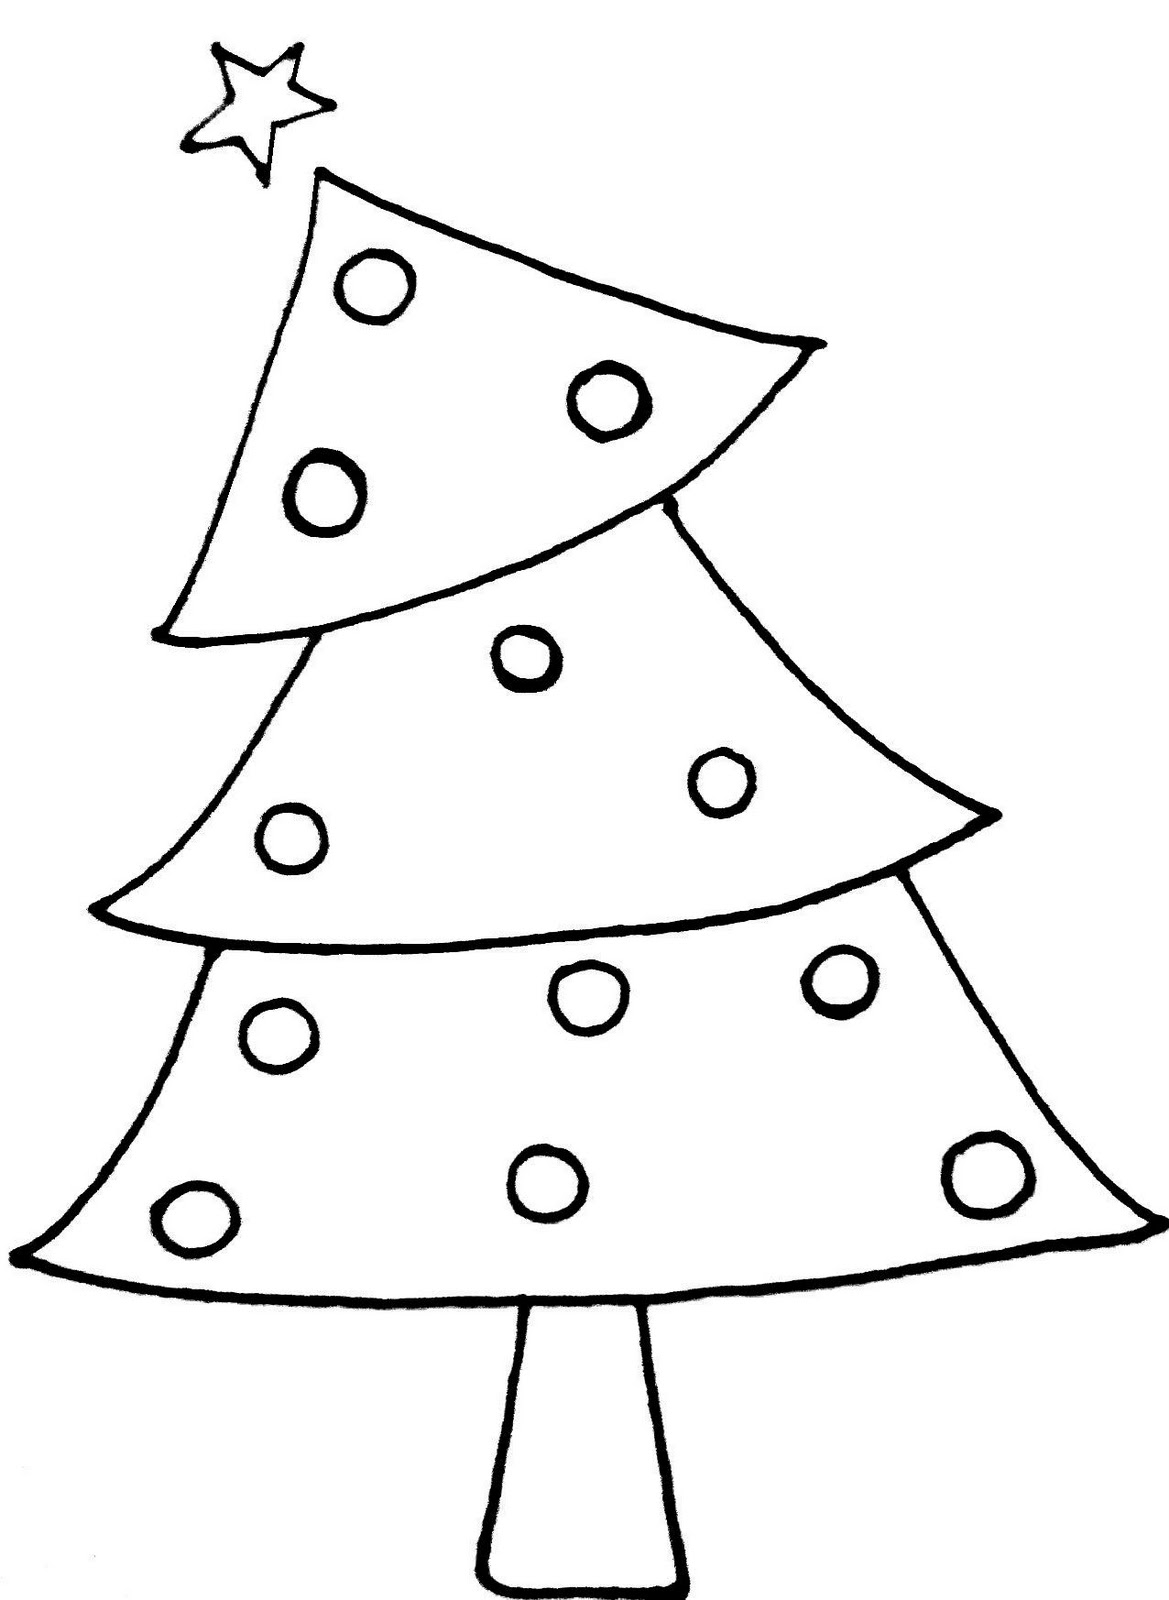 Best 28 Christmas Tree Black And White Clipart black